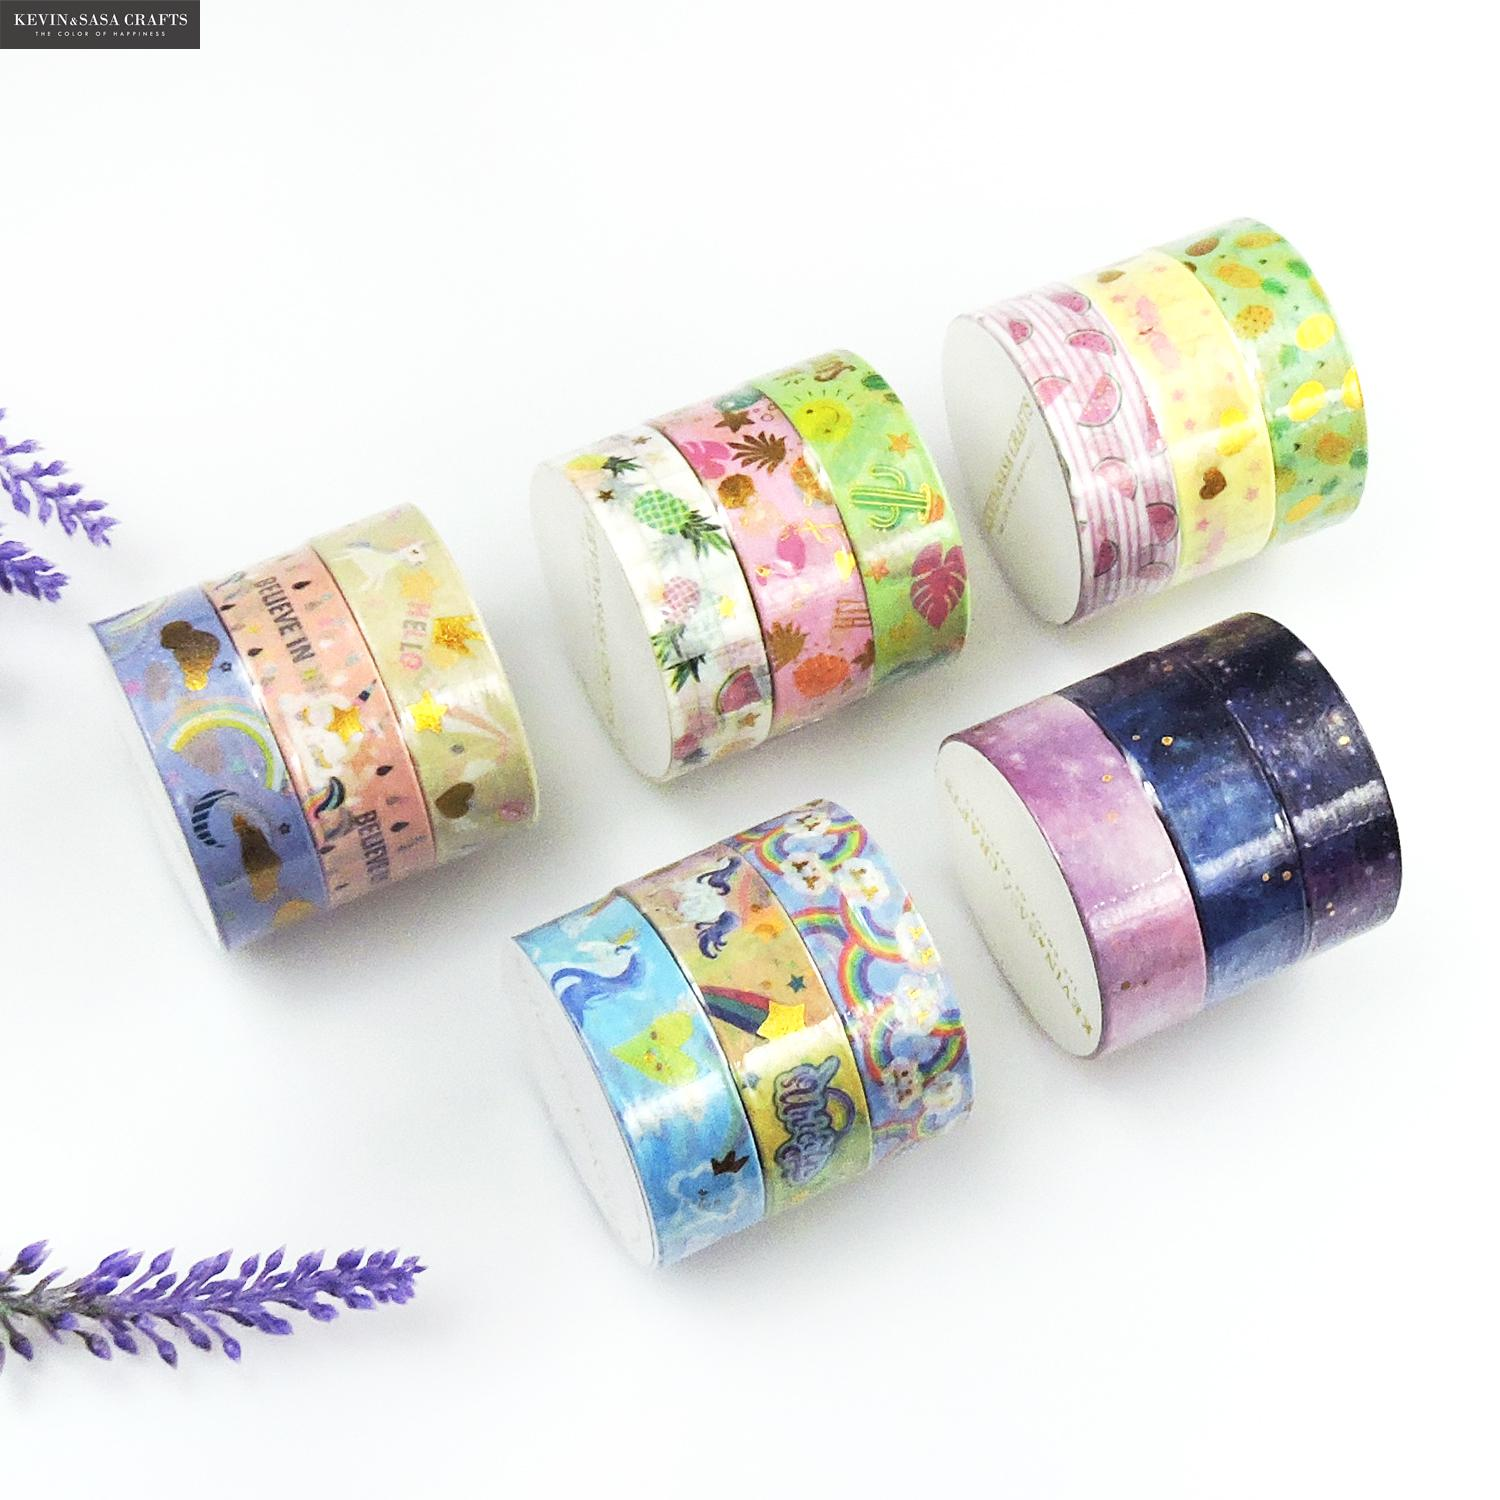 3Rolls/Set Washi Masking Tape Set Animal Fruits Paper Masking Tapes Japanese 15mm x 5m Washi Tape Diy Scrapbooking Sticker Tape 18 citis set travel series washi tape set japanese cute masking tape diy post it scrapbooking sticker label gift box set